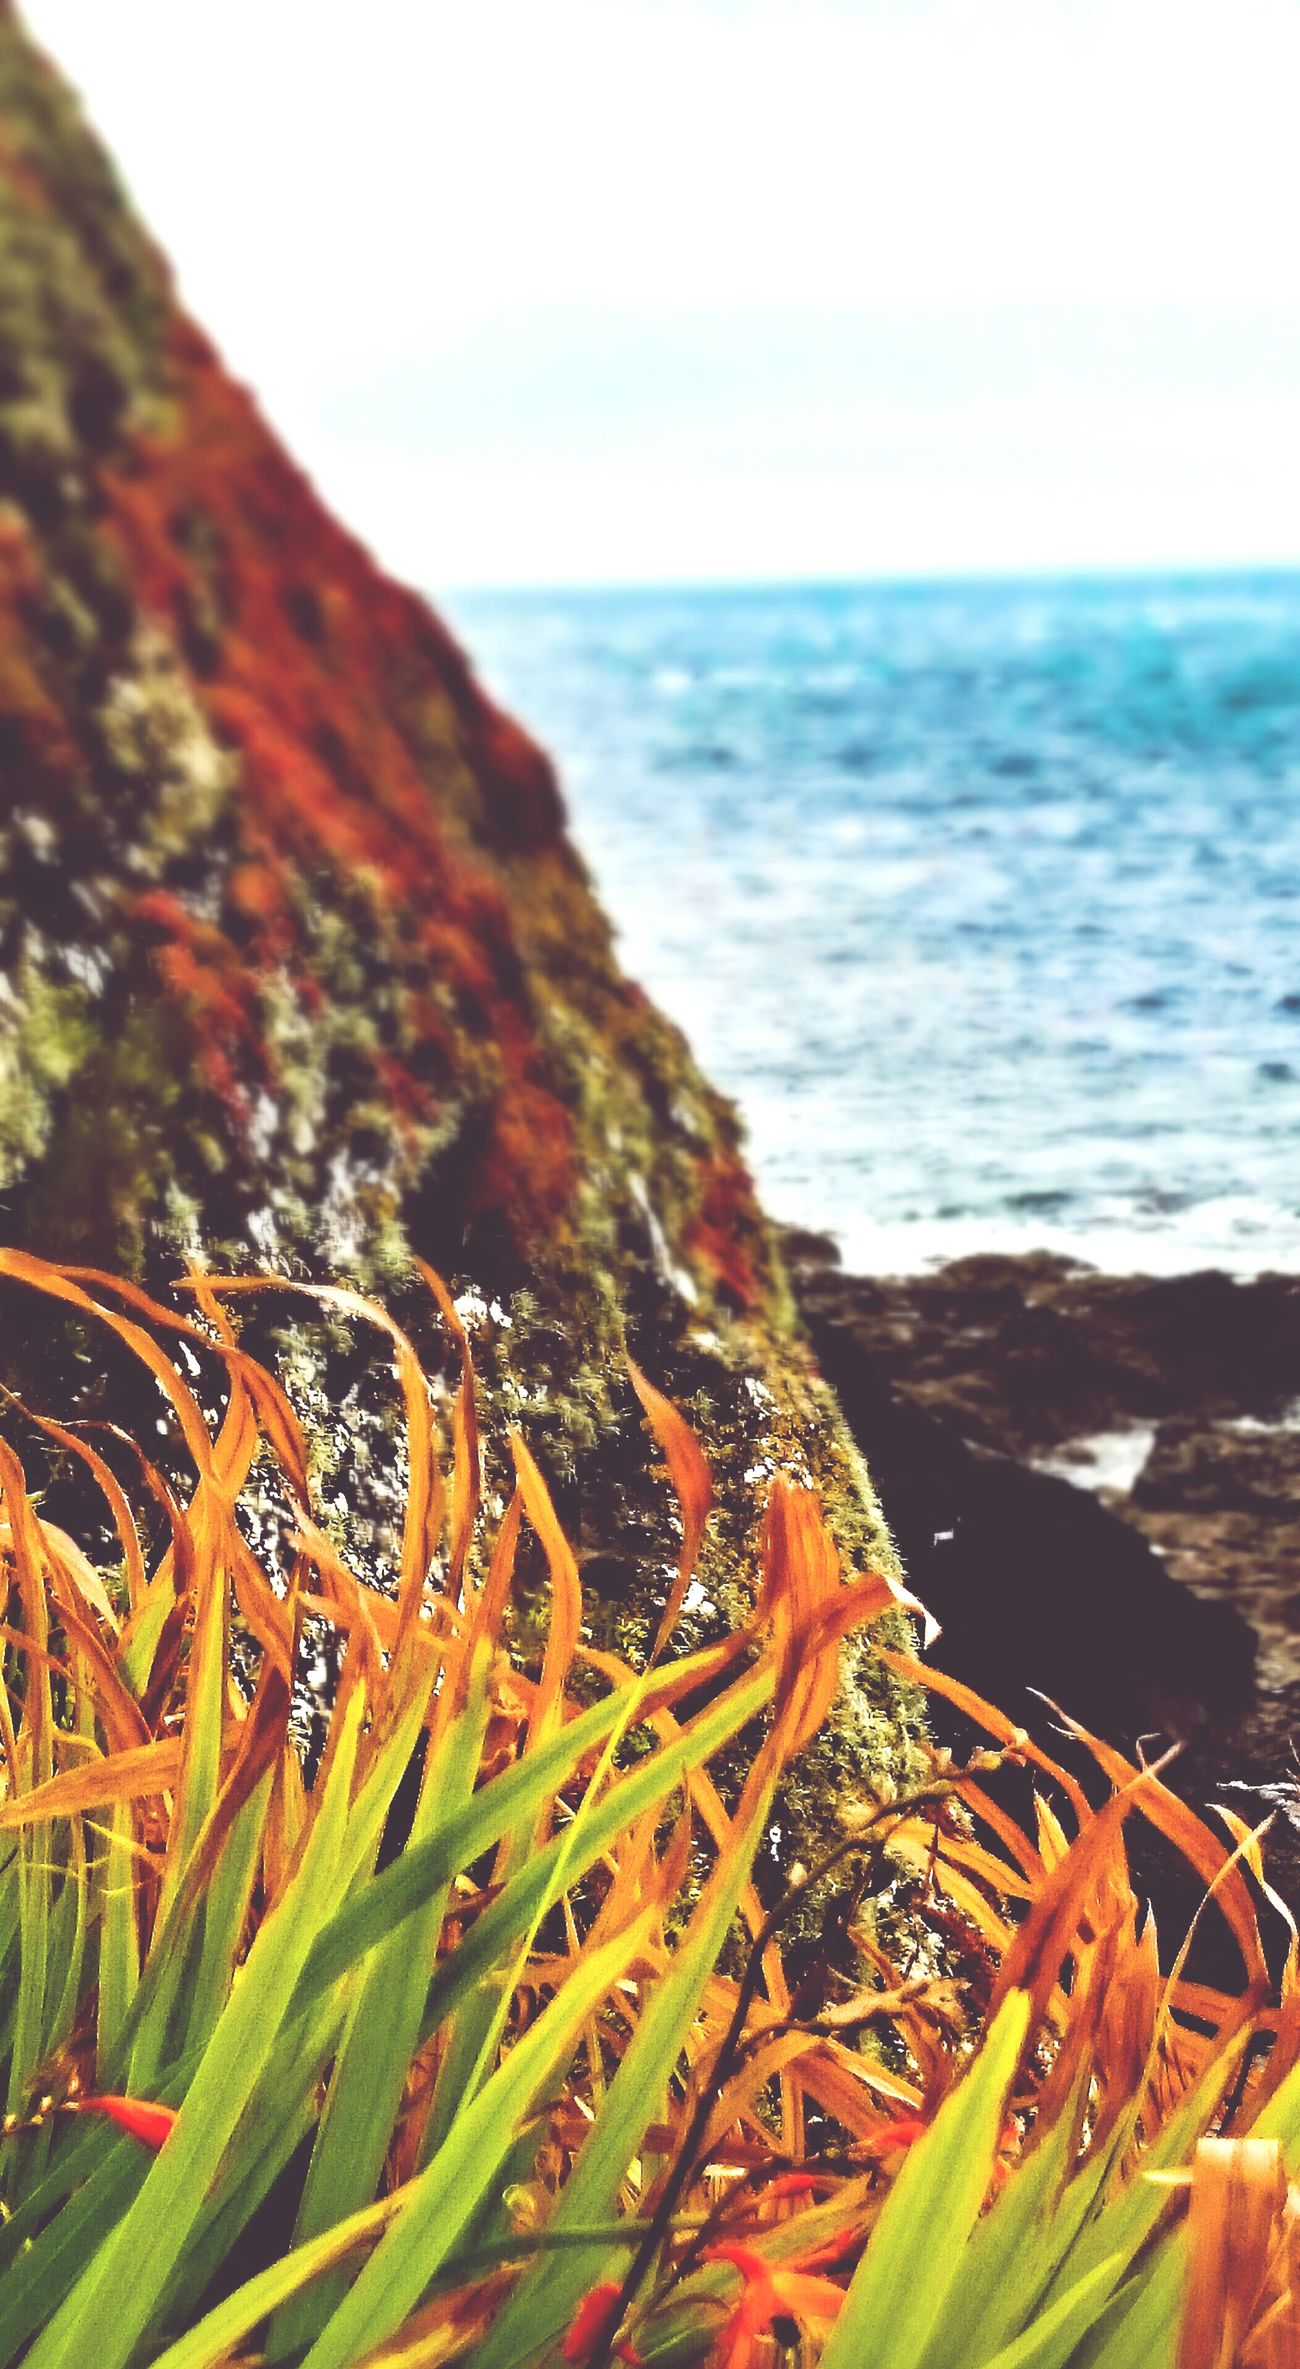 Clifftop Seascape Bird's-eye view Coastal Cliffs Cornwall Sea Beauty In Nature Water Horizon Over Water Nature Scenics No People Outdoors Day Taking Photos RuggedCornwall Views Horizons Cliff Cliffs And Sea Cliffs And Water Cliff And Blue Sea Cliffview